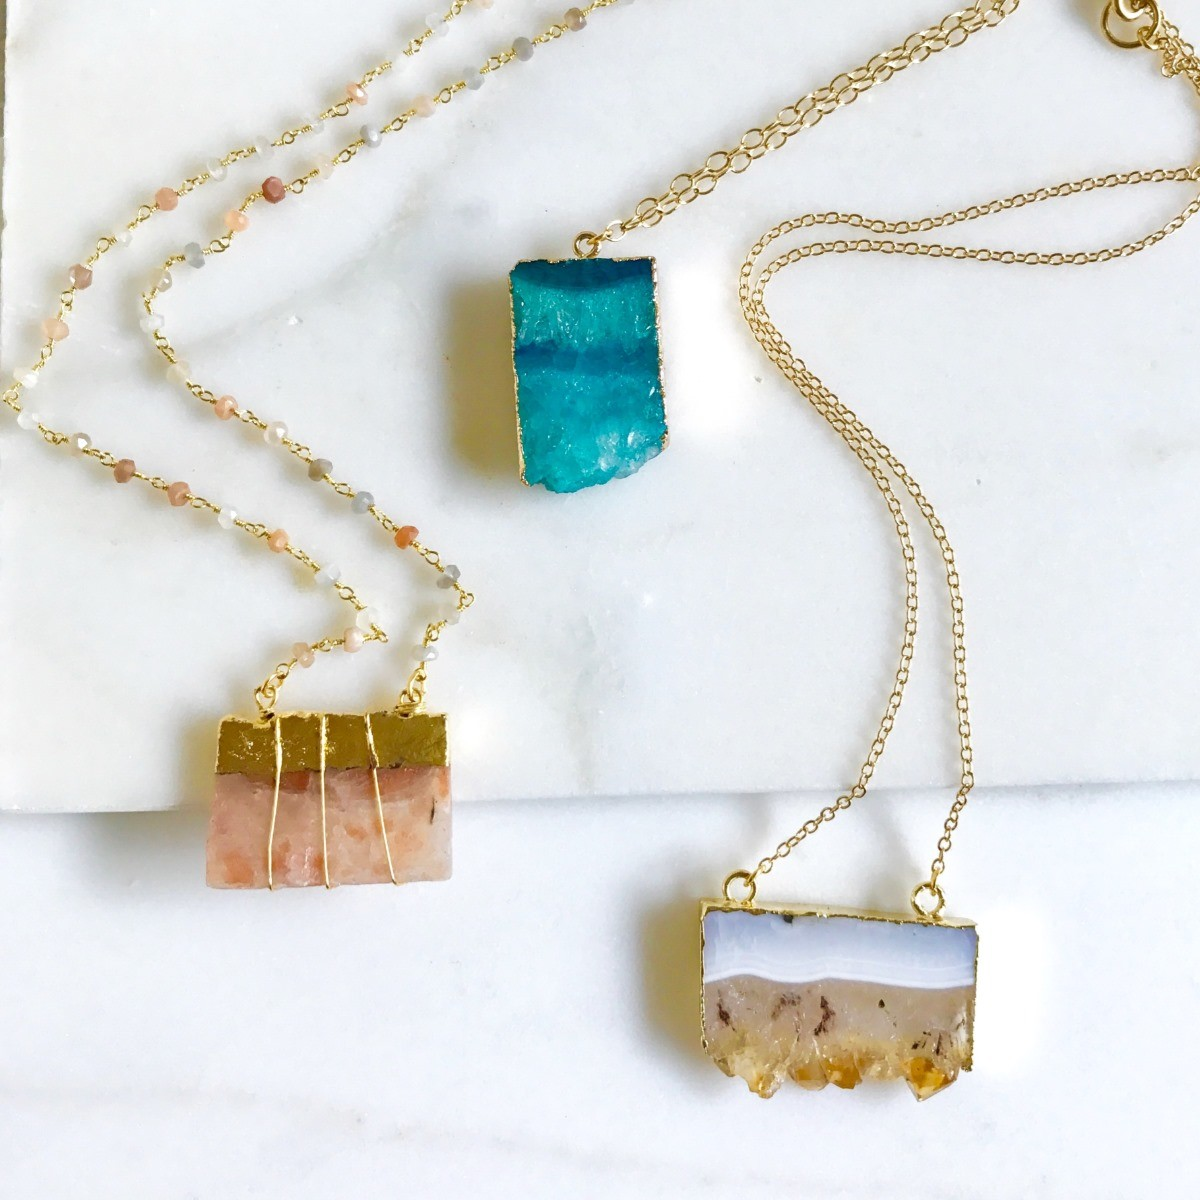 Rustic Gem Jewelry